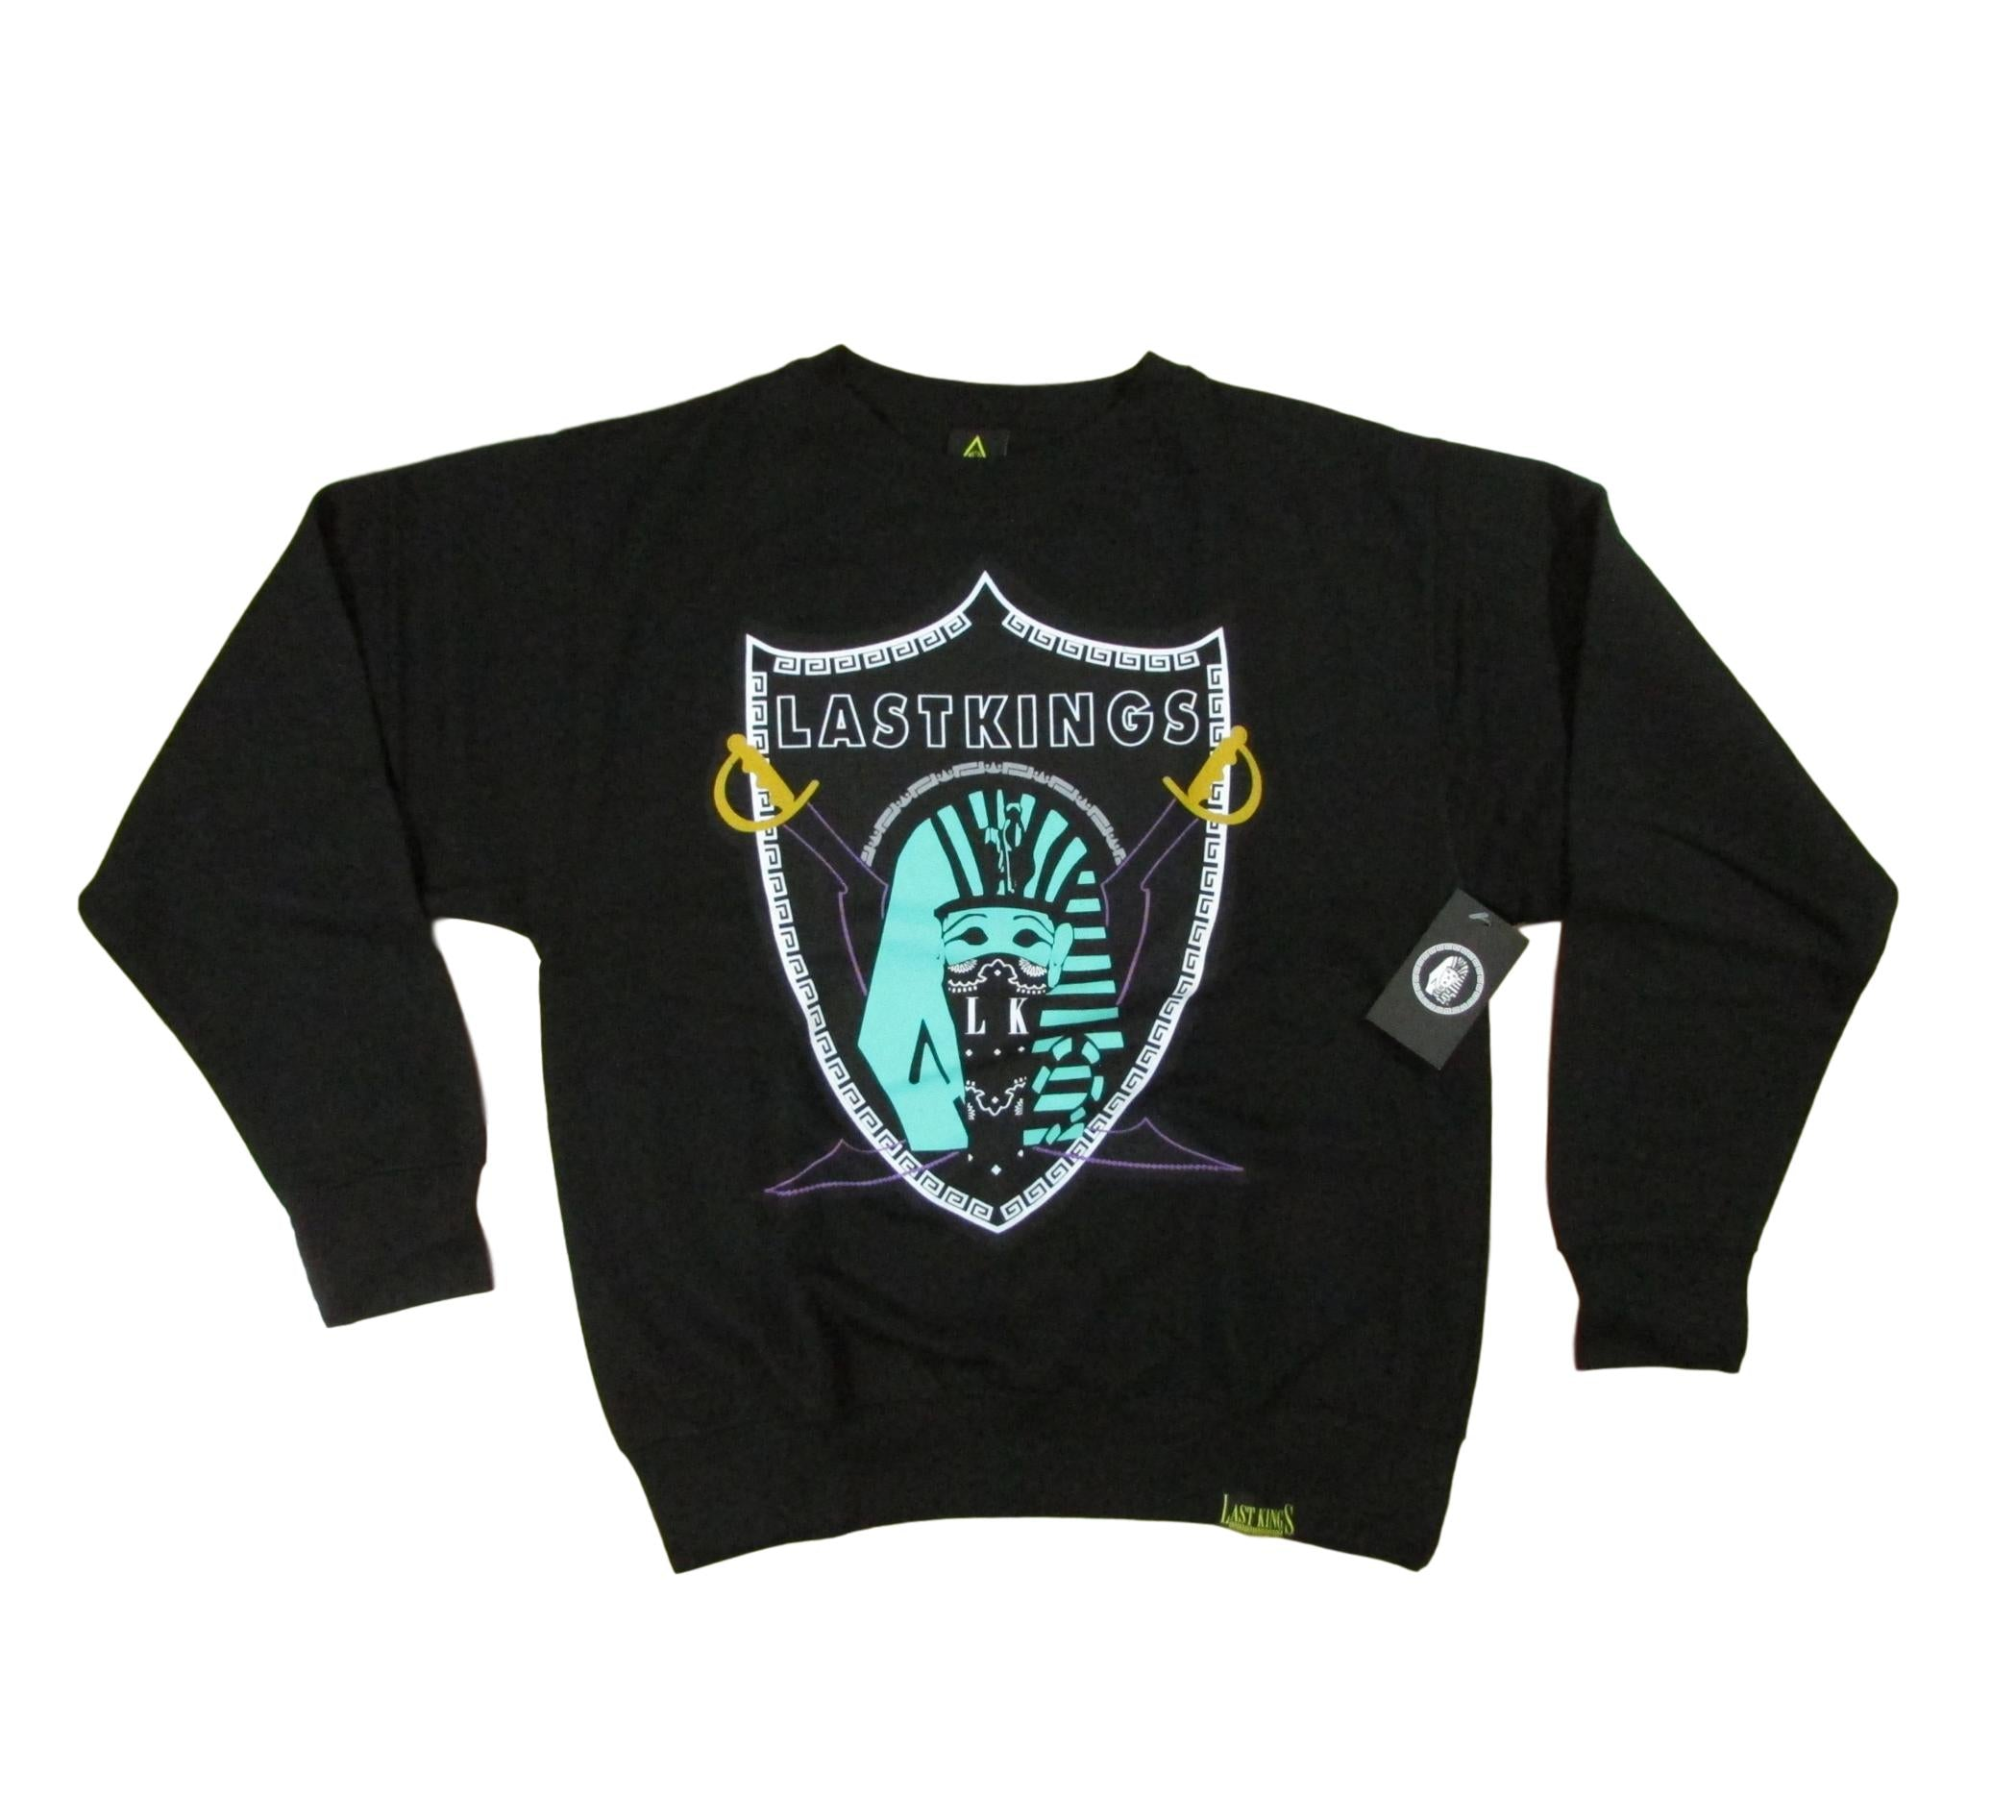 Last Kings Teal Pharaoh Raiders Emblem Crewneck Sweater Black